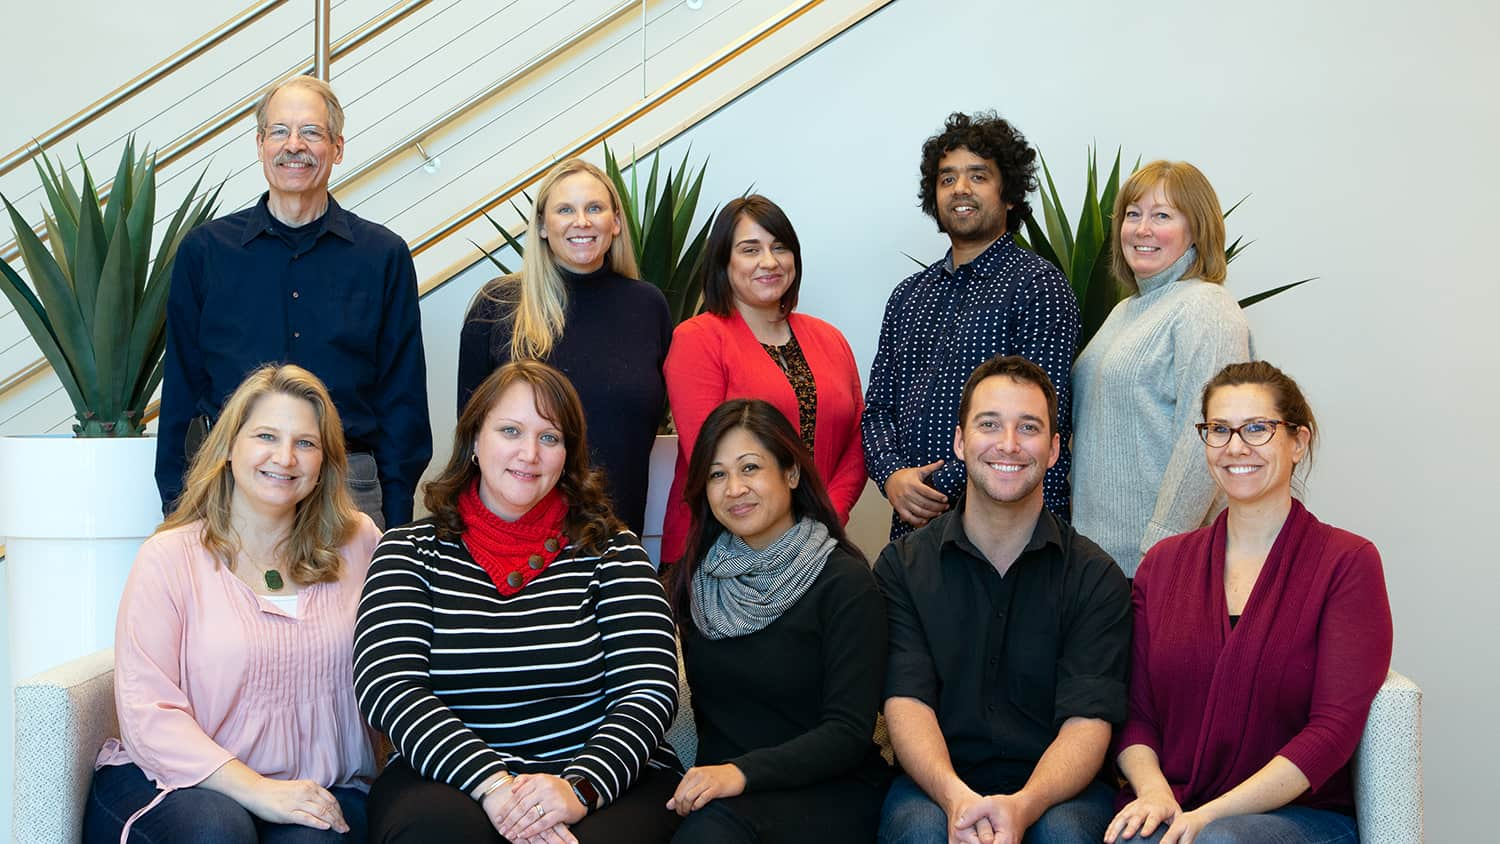 The spring 2019 OCIP team. Front row, left to right: Rebecca Sanchez, Bethany Smith, Arlene Mendoza-Moran, Christopher Beeson and Bethanne Tobey. Back row, left to right: Peter Hessling, Julianne Treme, Melissa Ramirez, Muntazar Monsur and Christine Cranford.